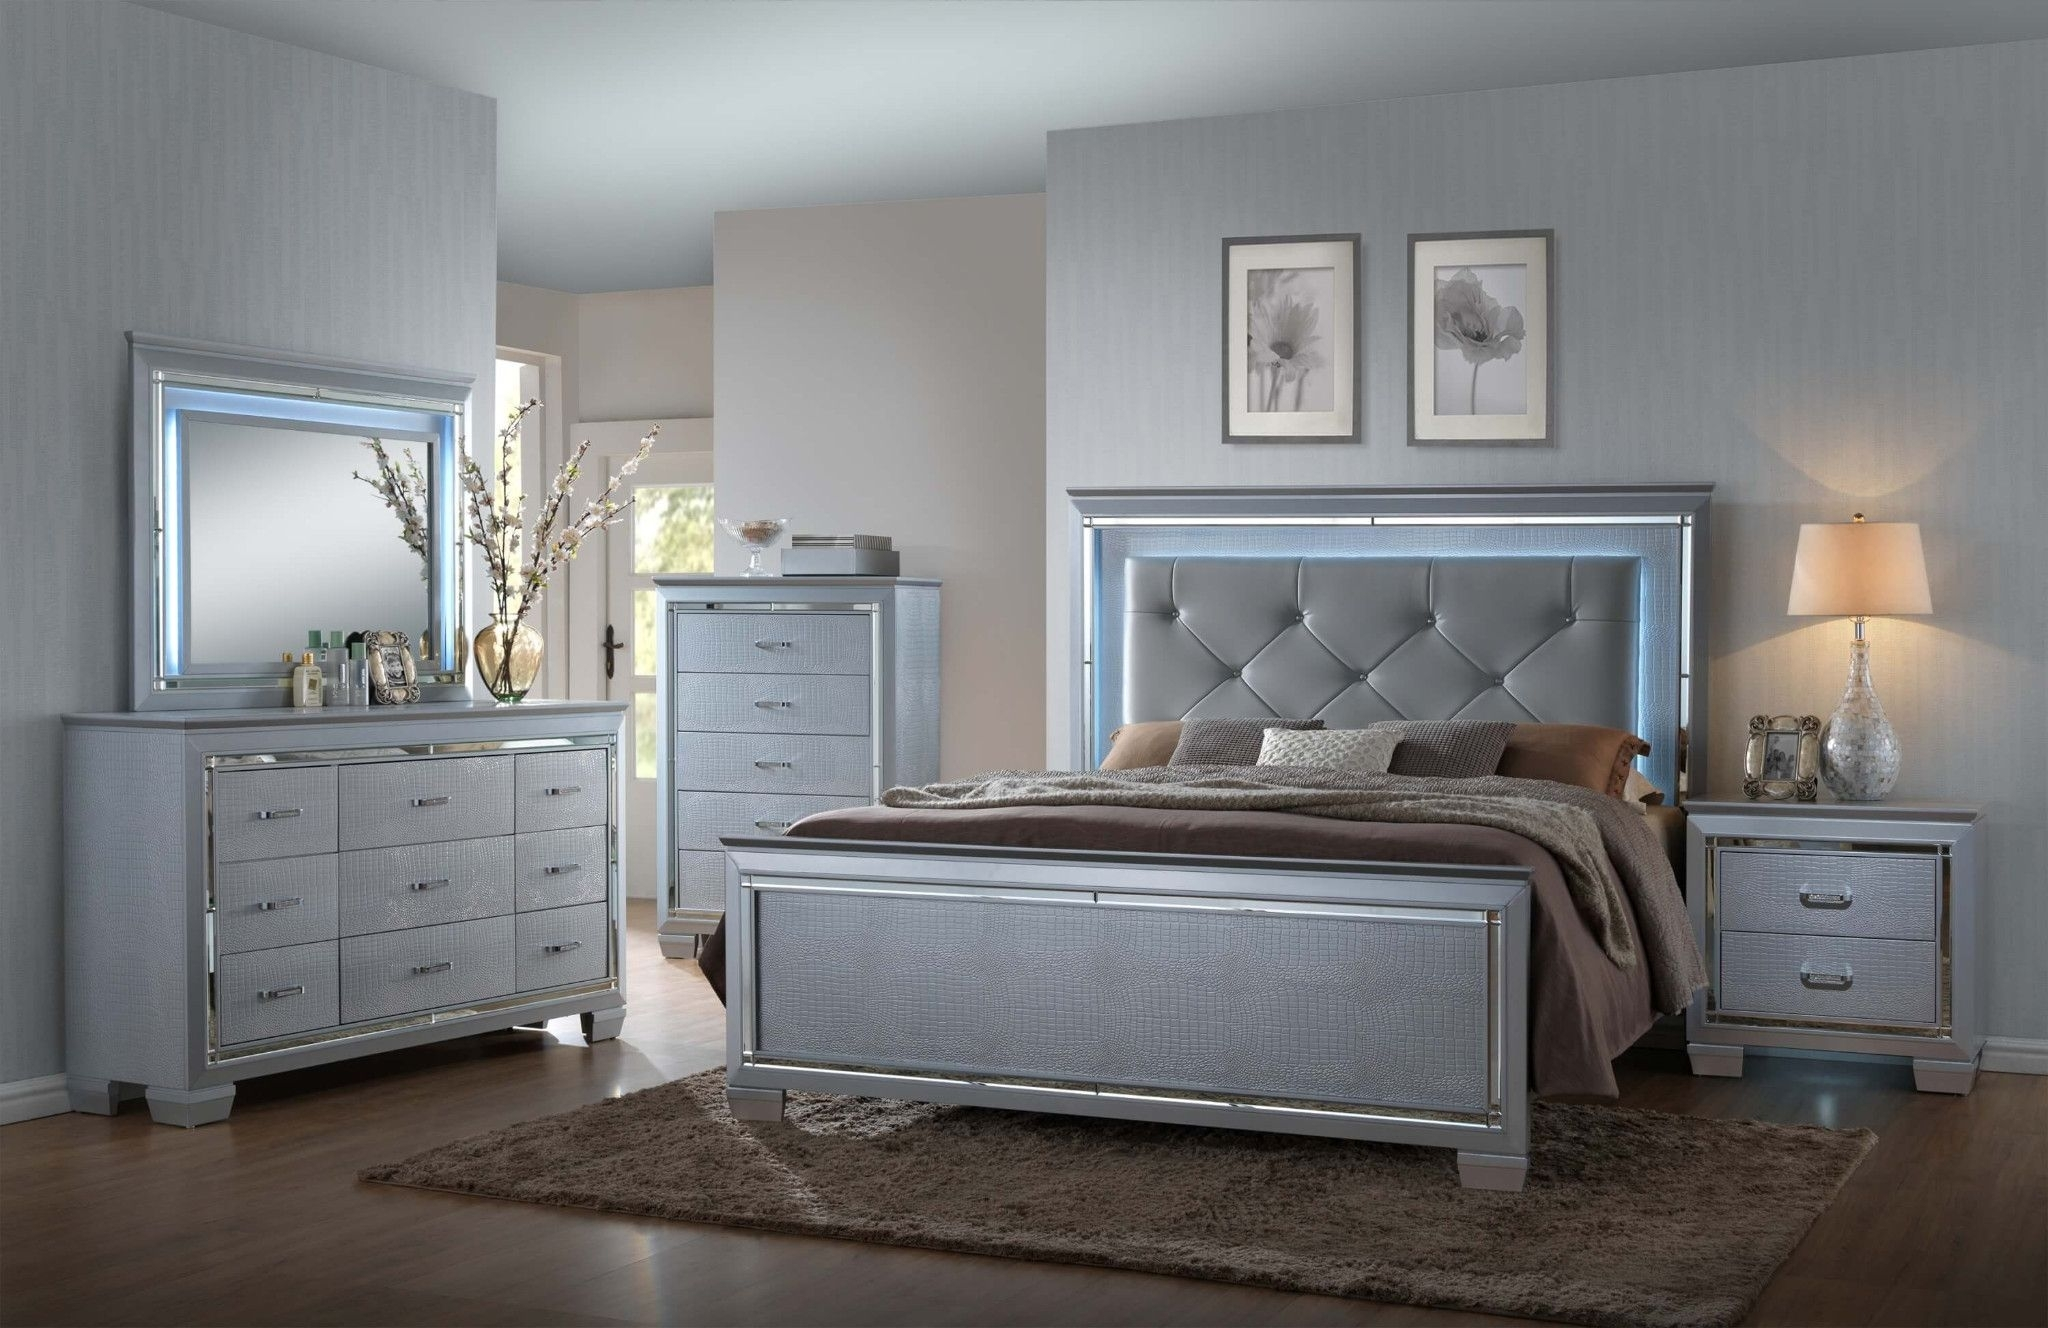 Lillian 5 Piece Bedroom Led Backlighting Accents On Headboard And With Most Current Hartigan 2 Door Sideboards (View 17 of 20)